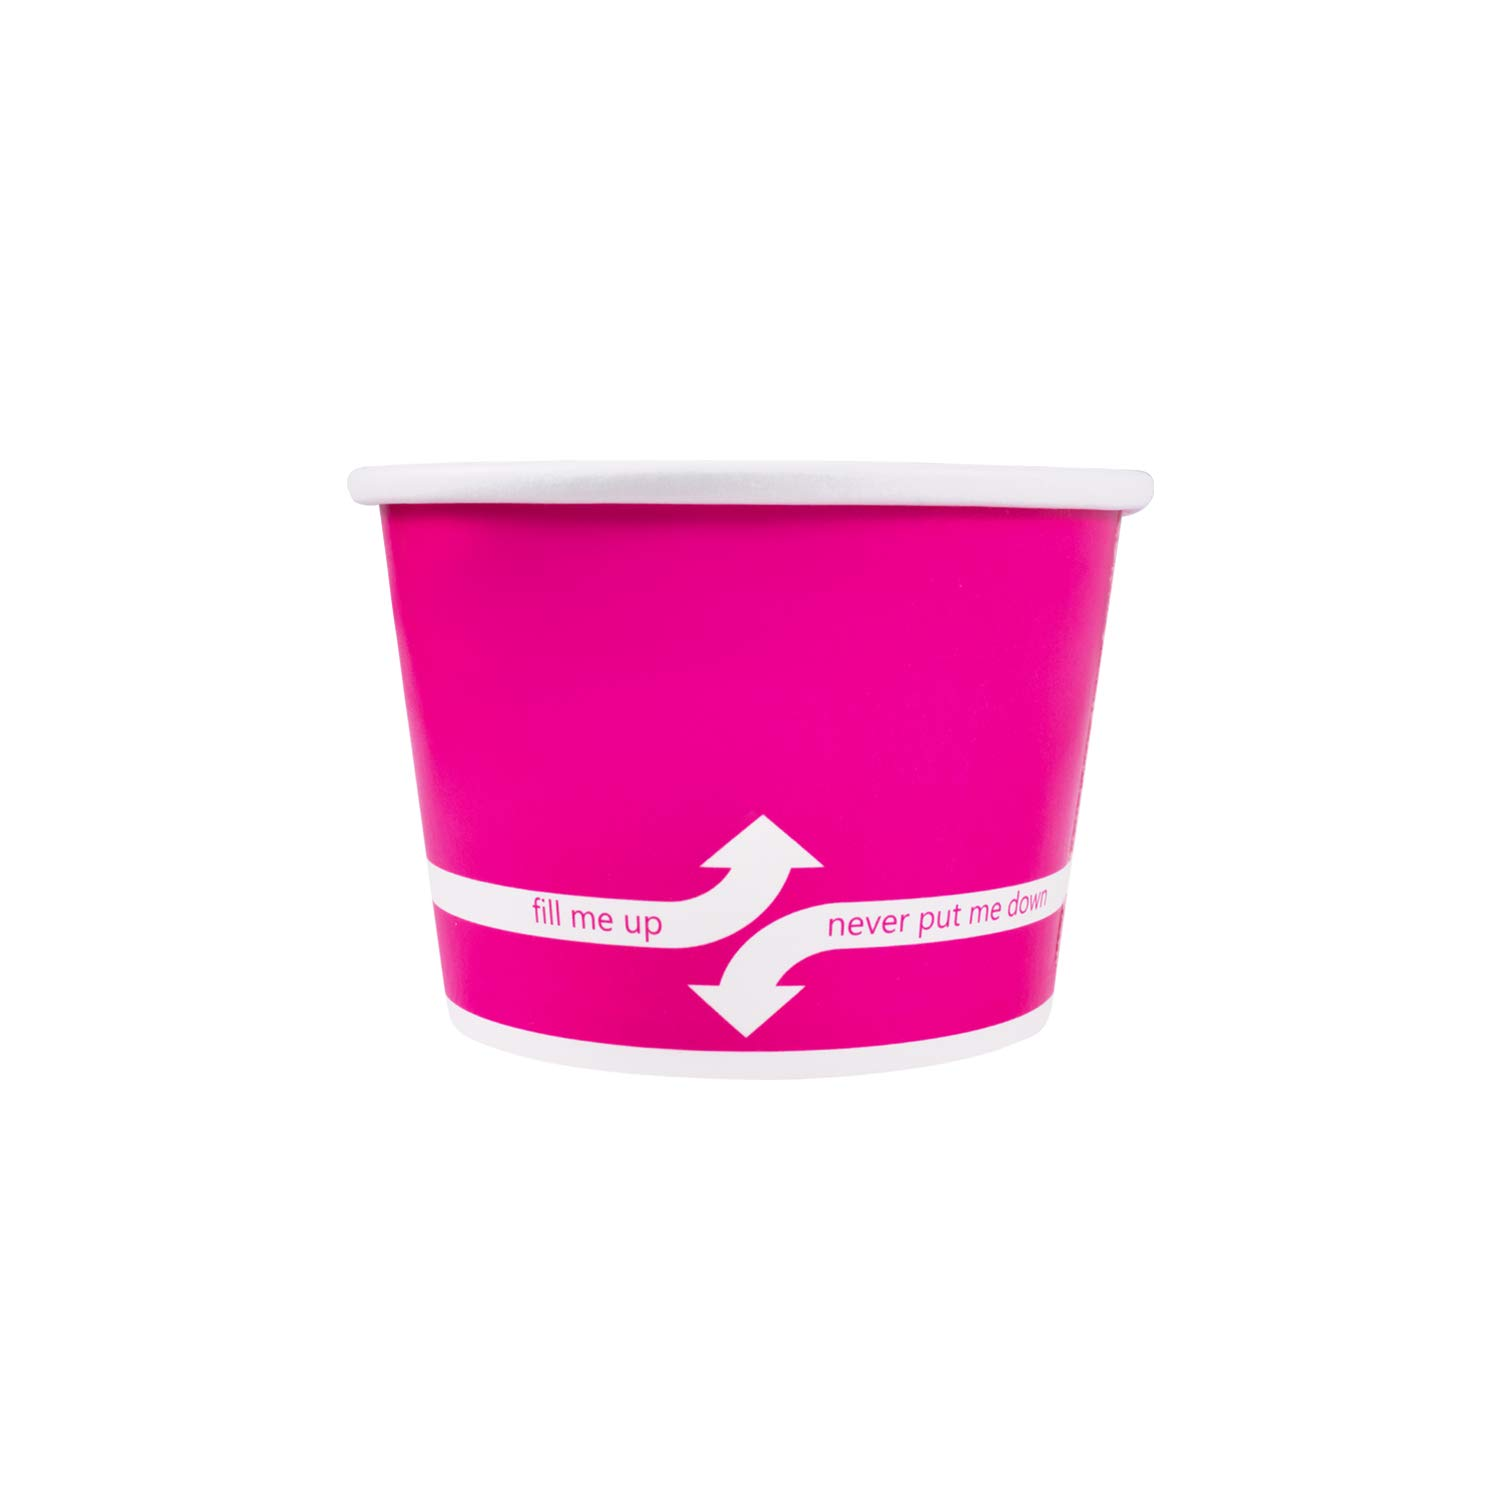 Karat C-KDP8 Pink 8oz Food Containers of 1000 Large special price Case - service